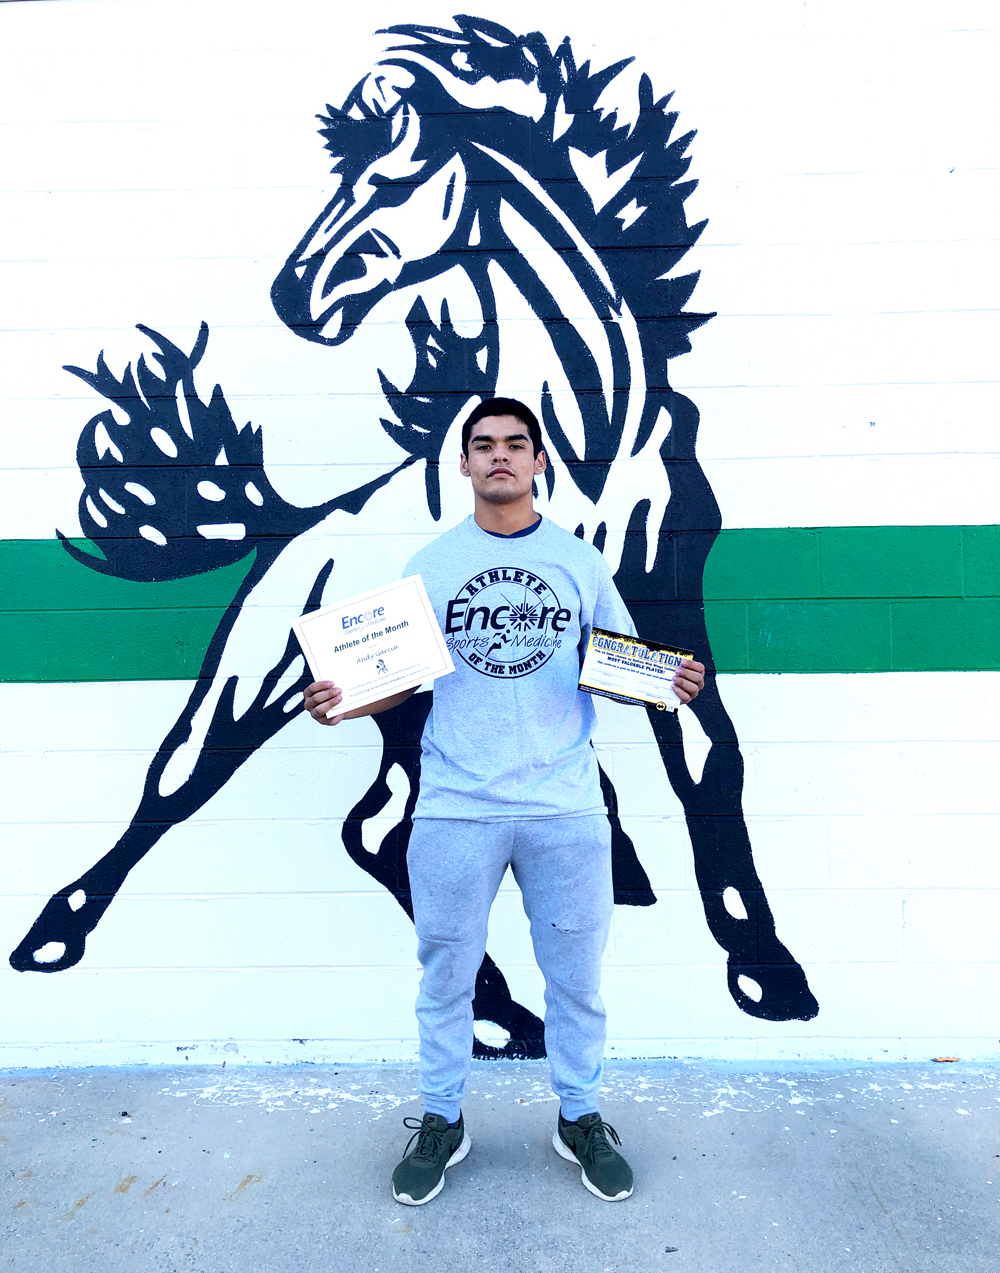 Andy Garcia is Athlete of the Month for Holly Pond High School and Encore Rehabilitation-Cullman